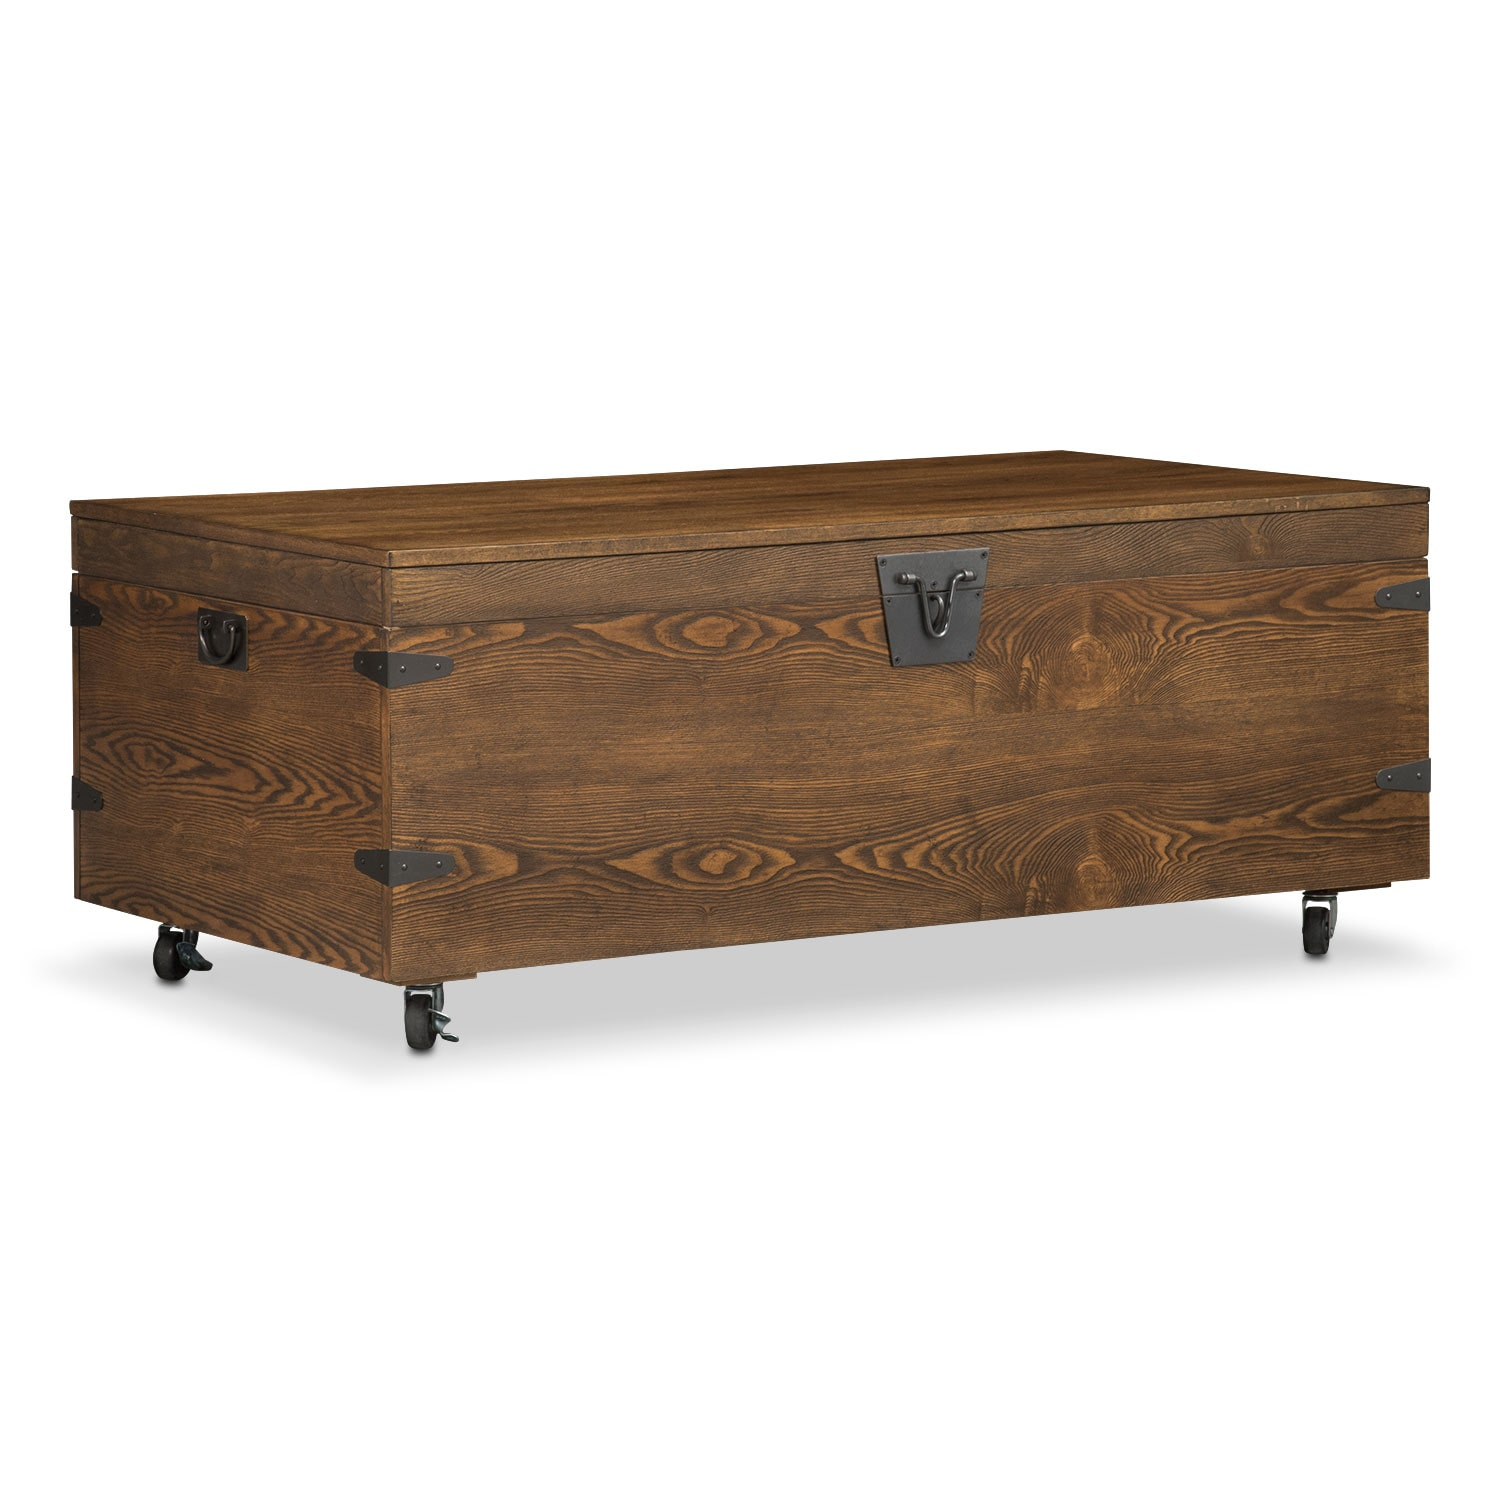 Shipyard Trunk Cocktail Table - Nutmeg